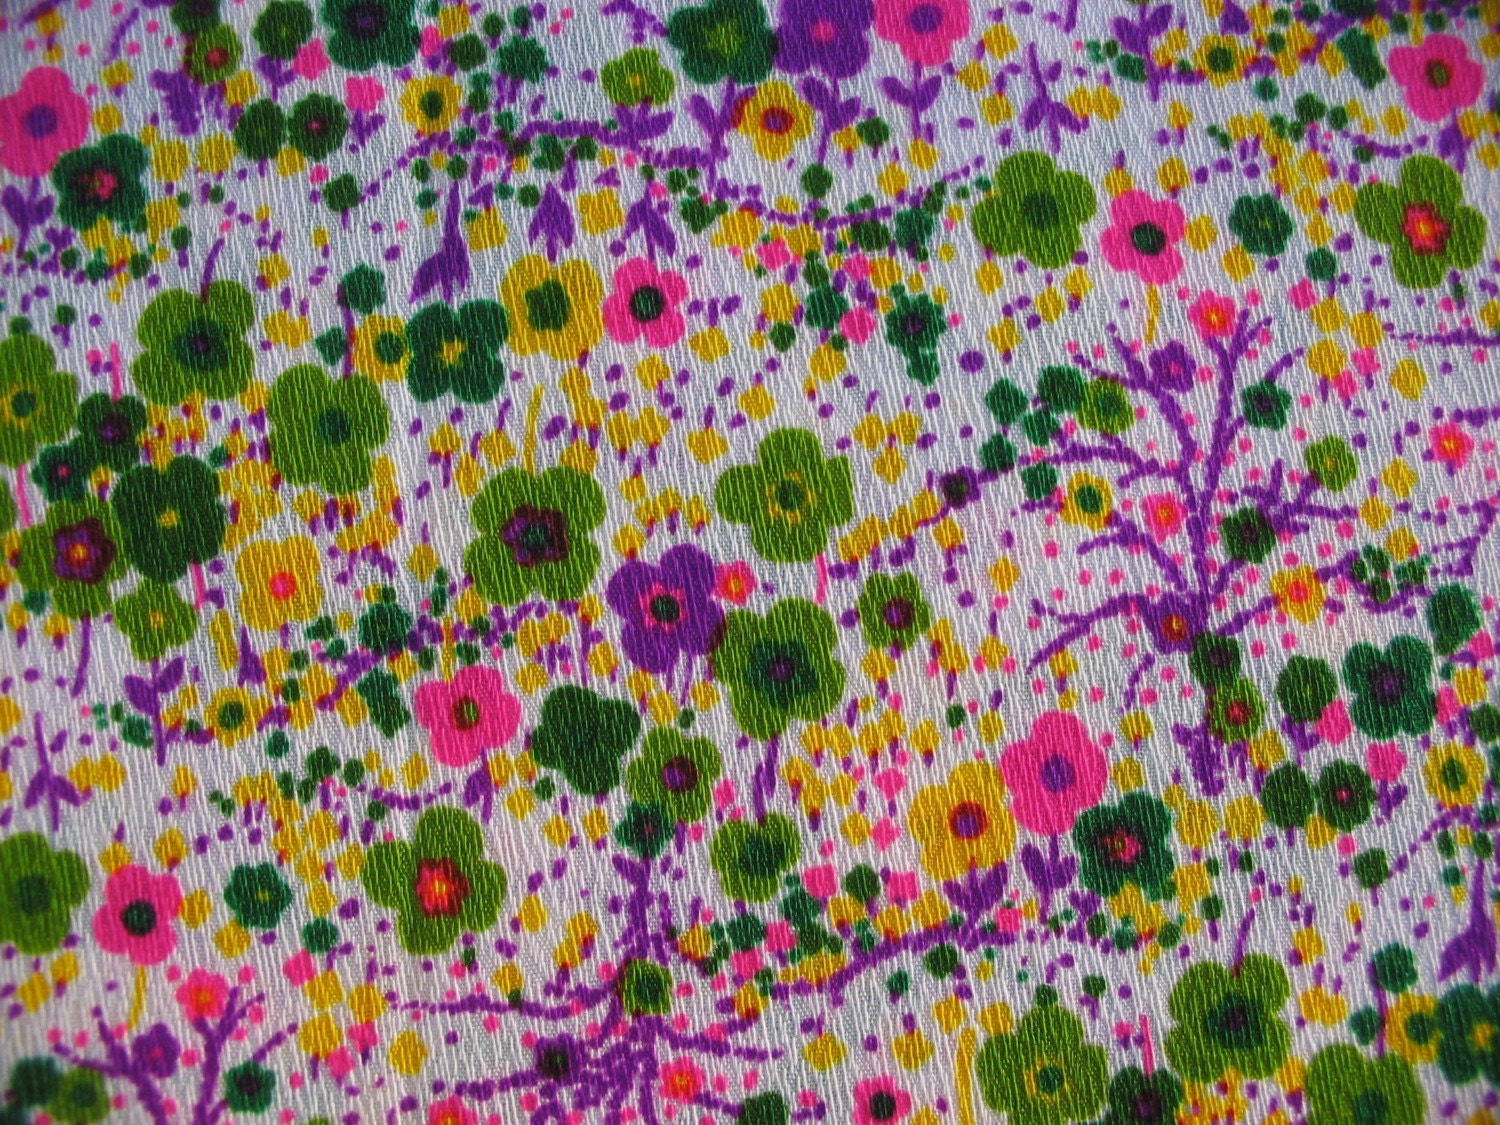 Vintage 1970s 1960s Life On Mars Psychedelic Flower Power Crazy Bark Cloth 18 inches 45.7 cm